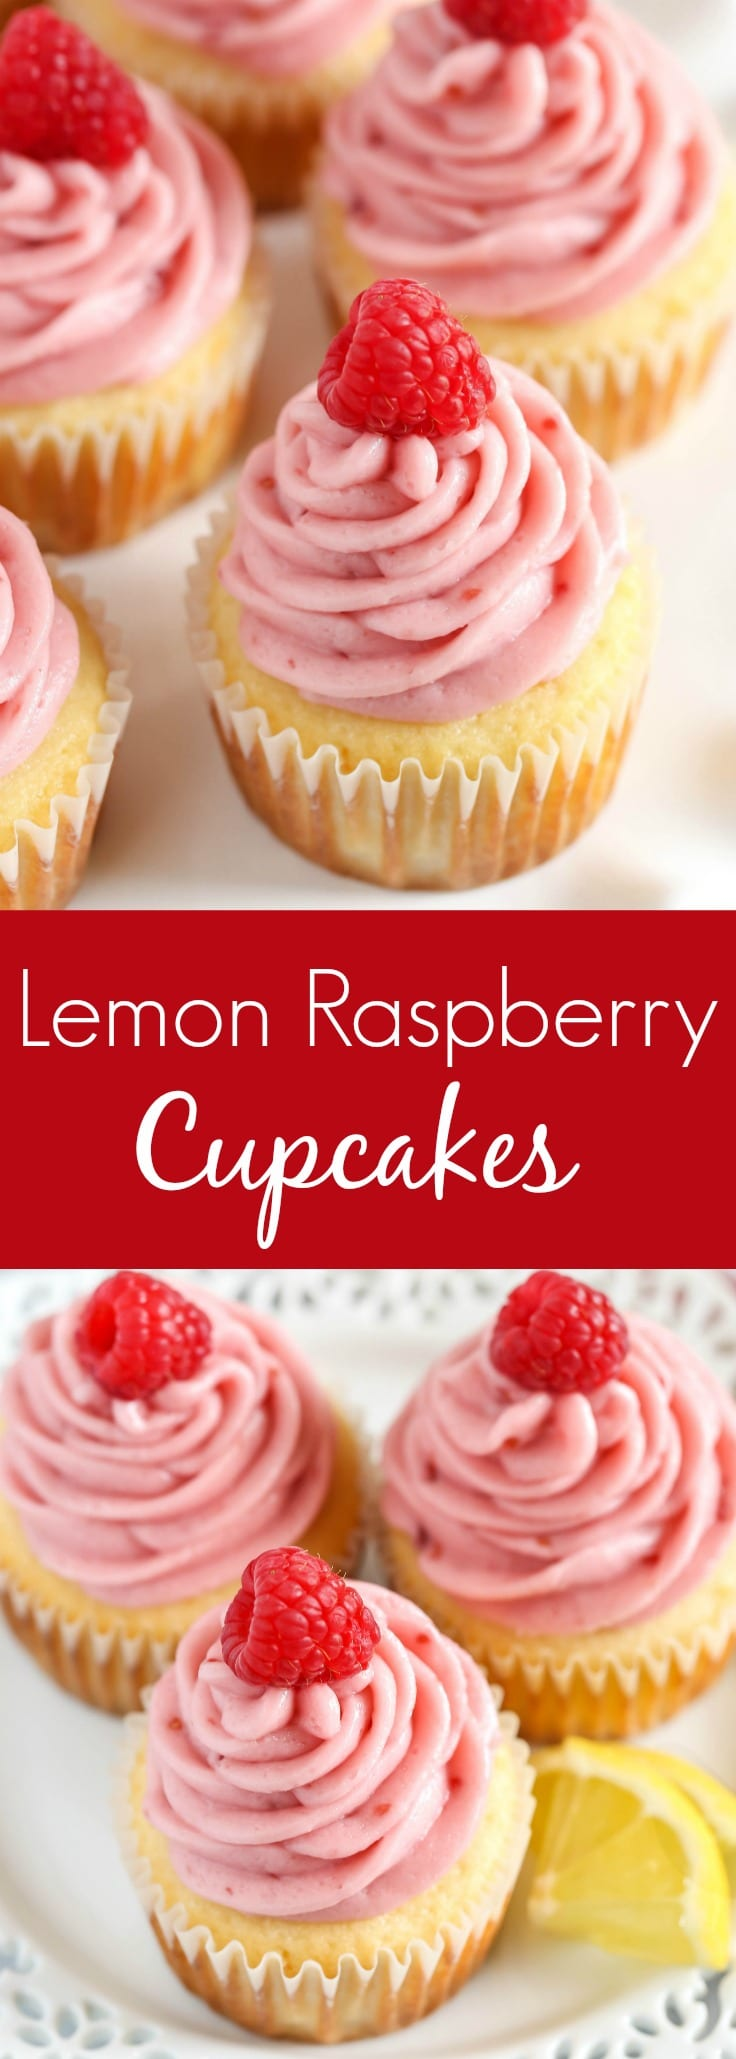 Light and moist lemon cupcakes topped with an easy raspberry buttercream frosting. These Lemon Cupcakes with Raspberry Buttercream Frosting are absolutely delicious!